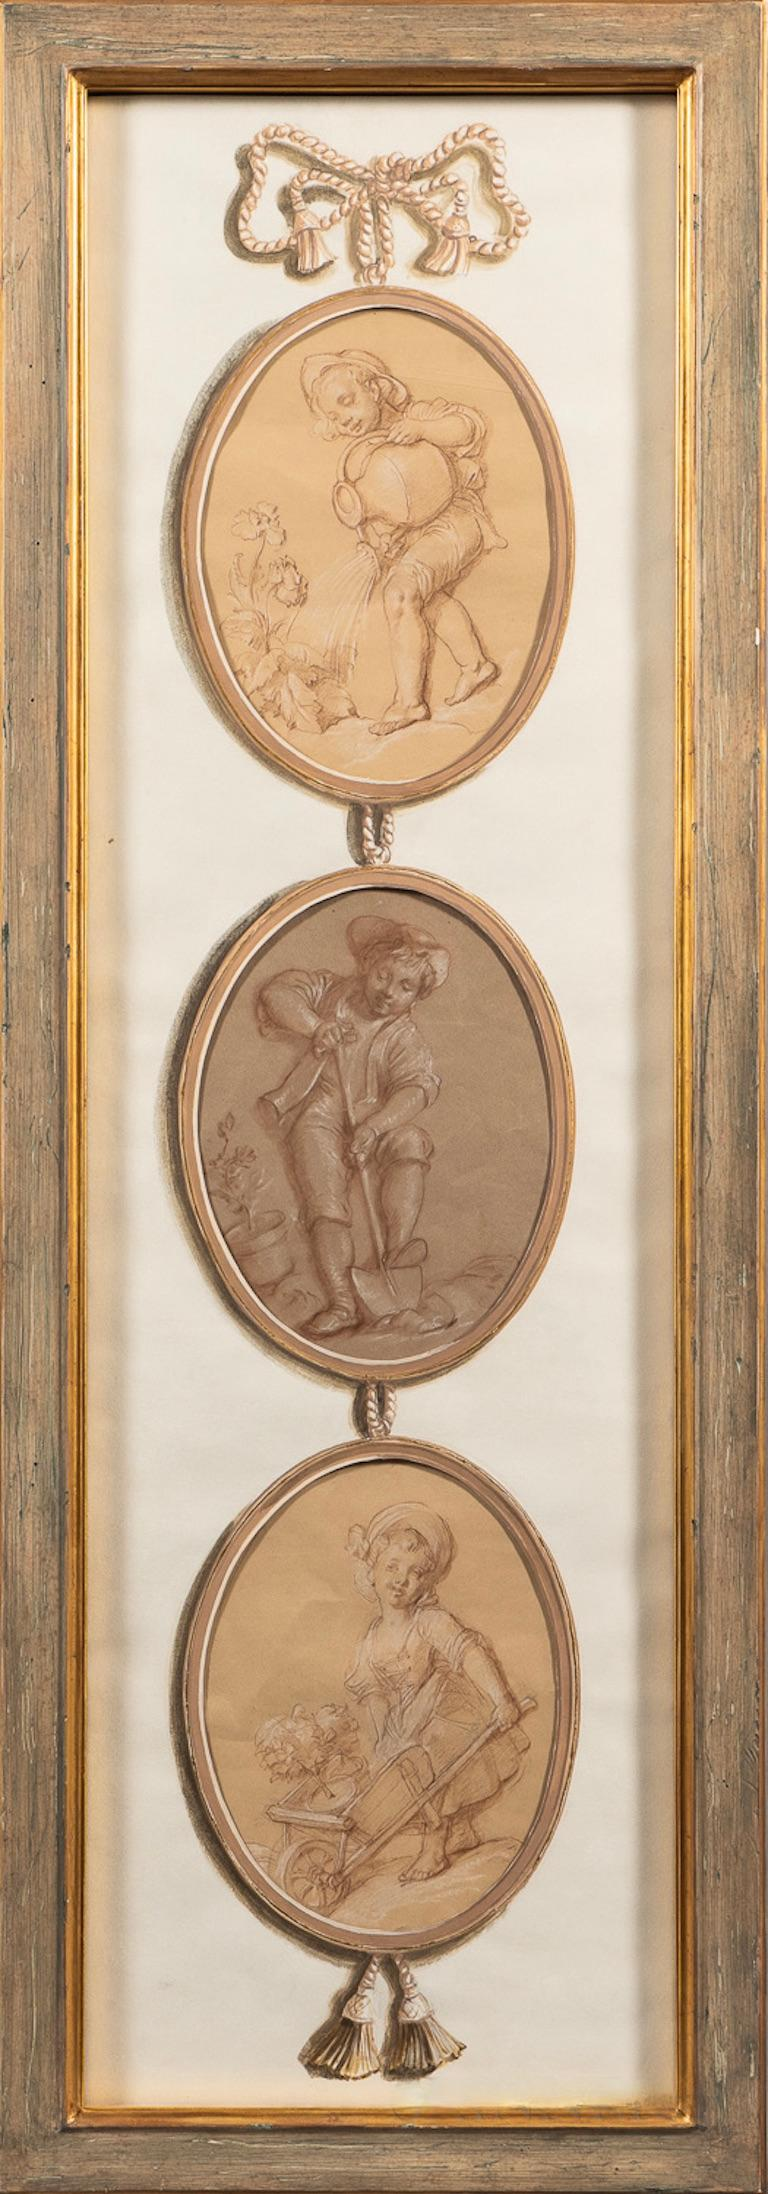 Pair of French School drawings in 18th century style. Hand drawn in Old Master Technique. Boucher School style  Pair of Trompe l'Oeil Three-drop Panels  Unsigned.  Red and white chalk on paper presented in gouache and watercolor embellished mats